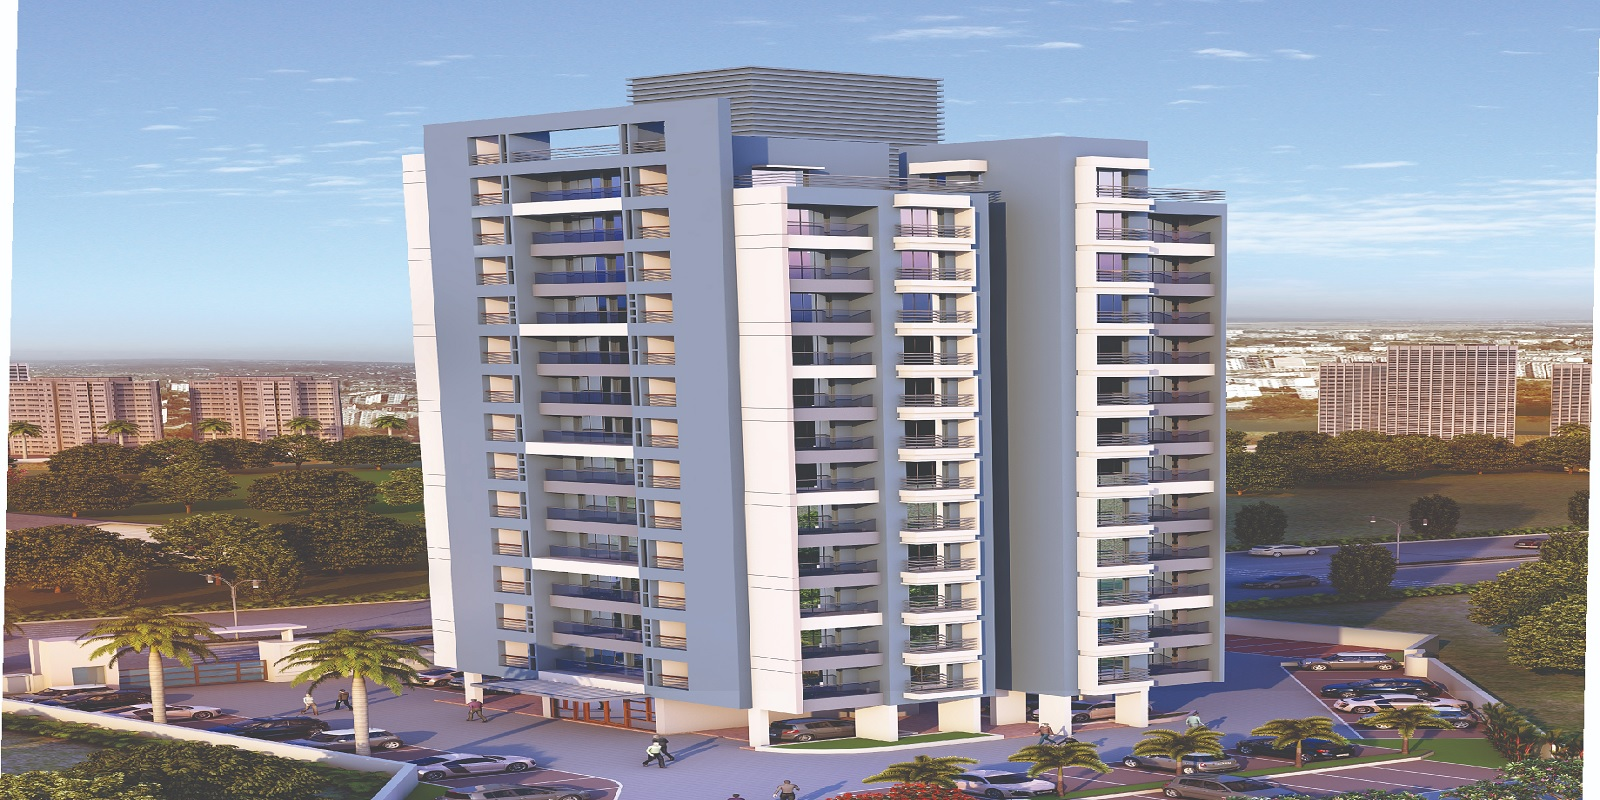 kanungos garden city project project large image1